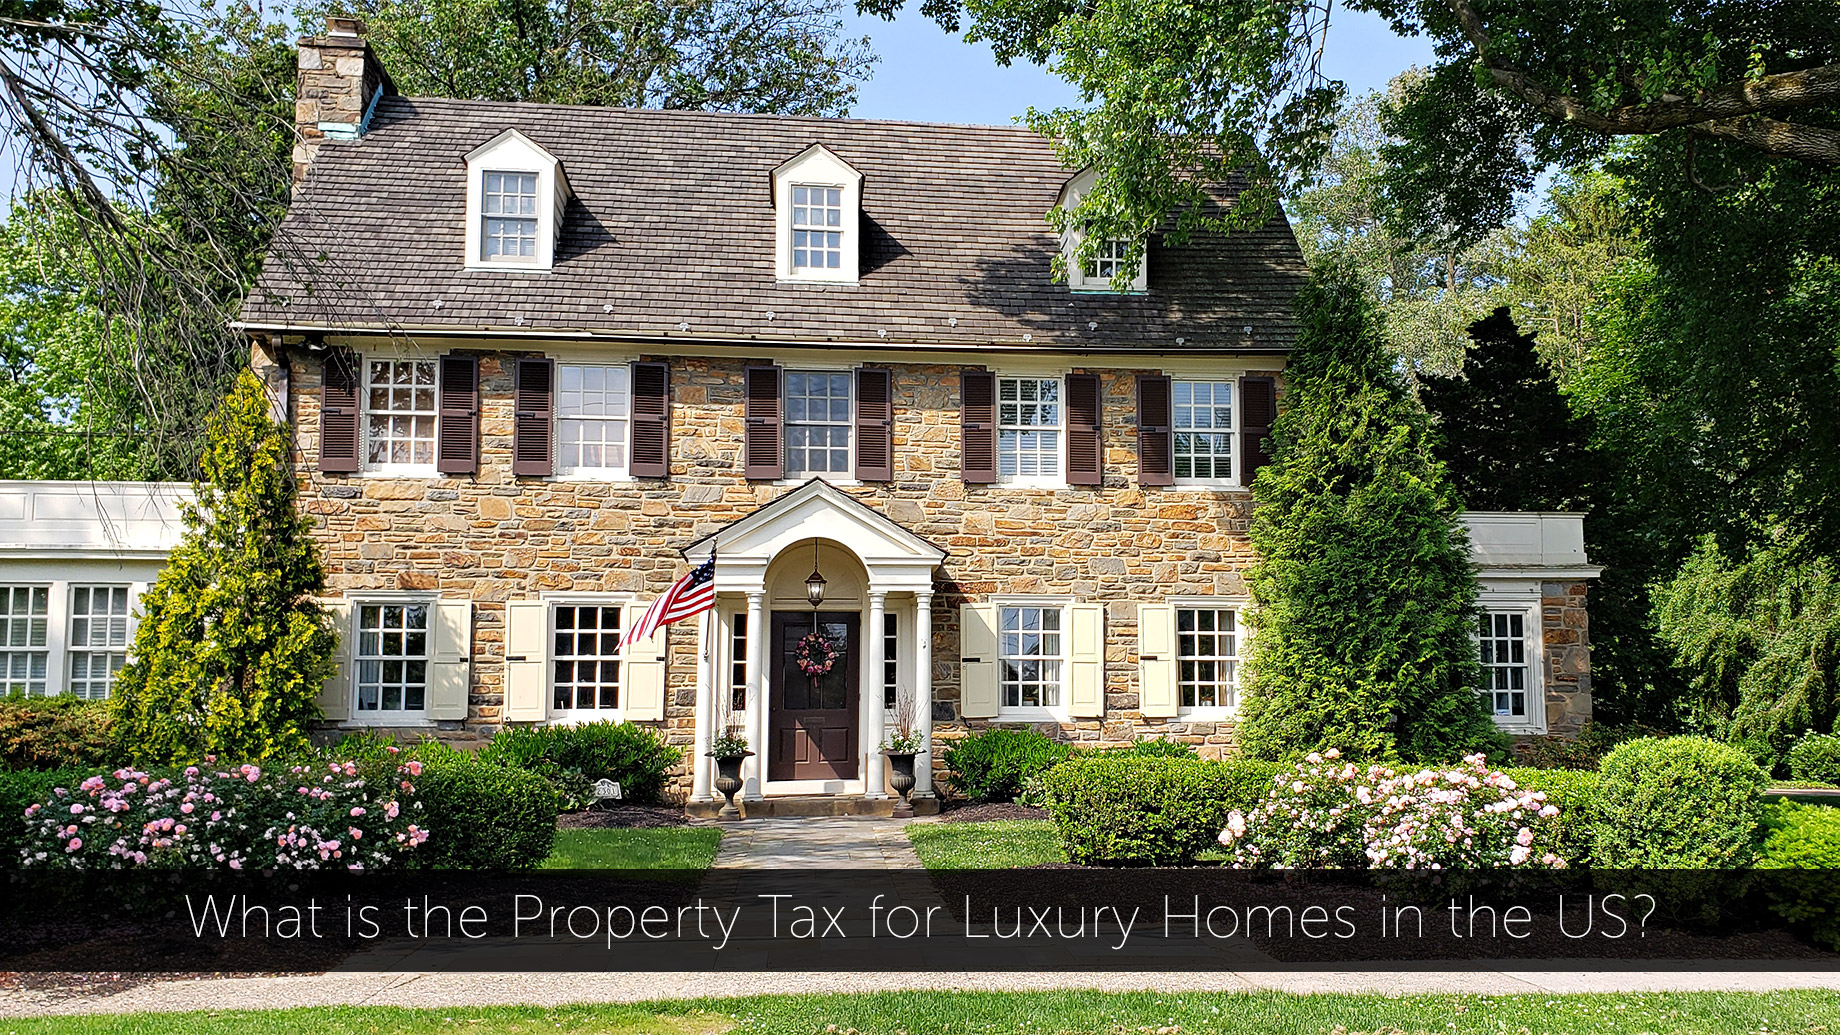 What is the Property Tax for Luxury Homes in the US?